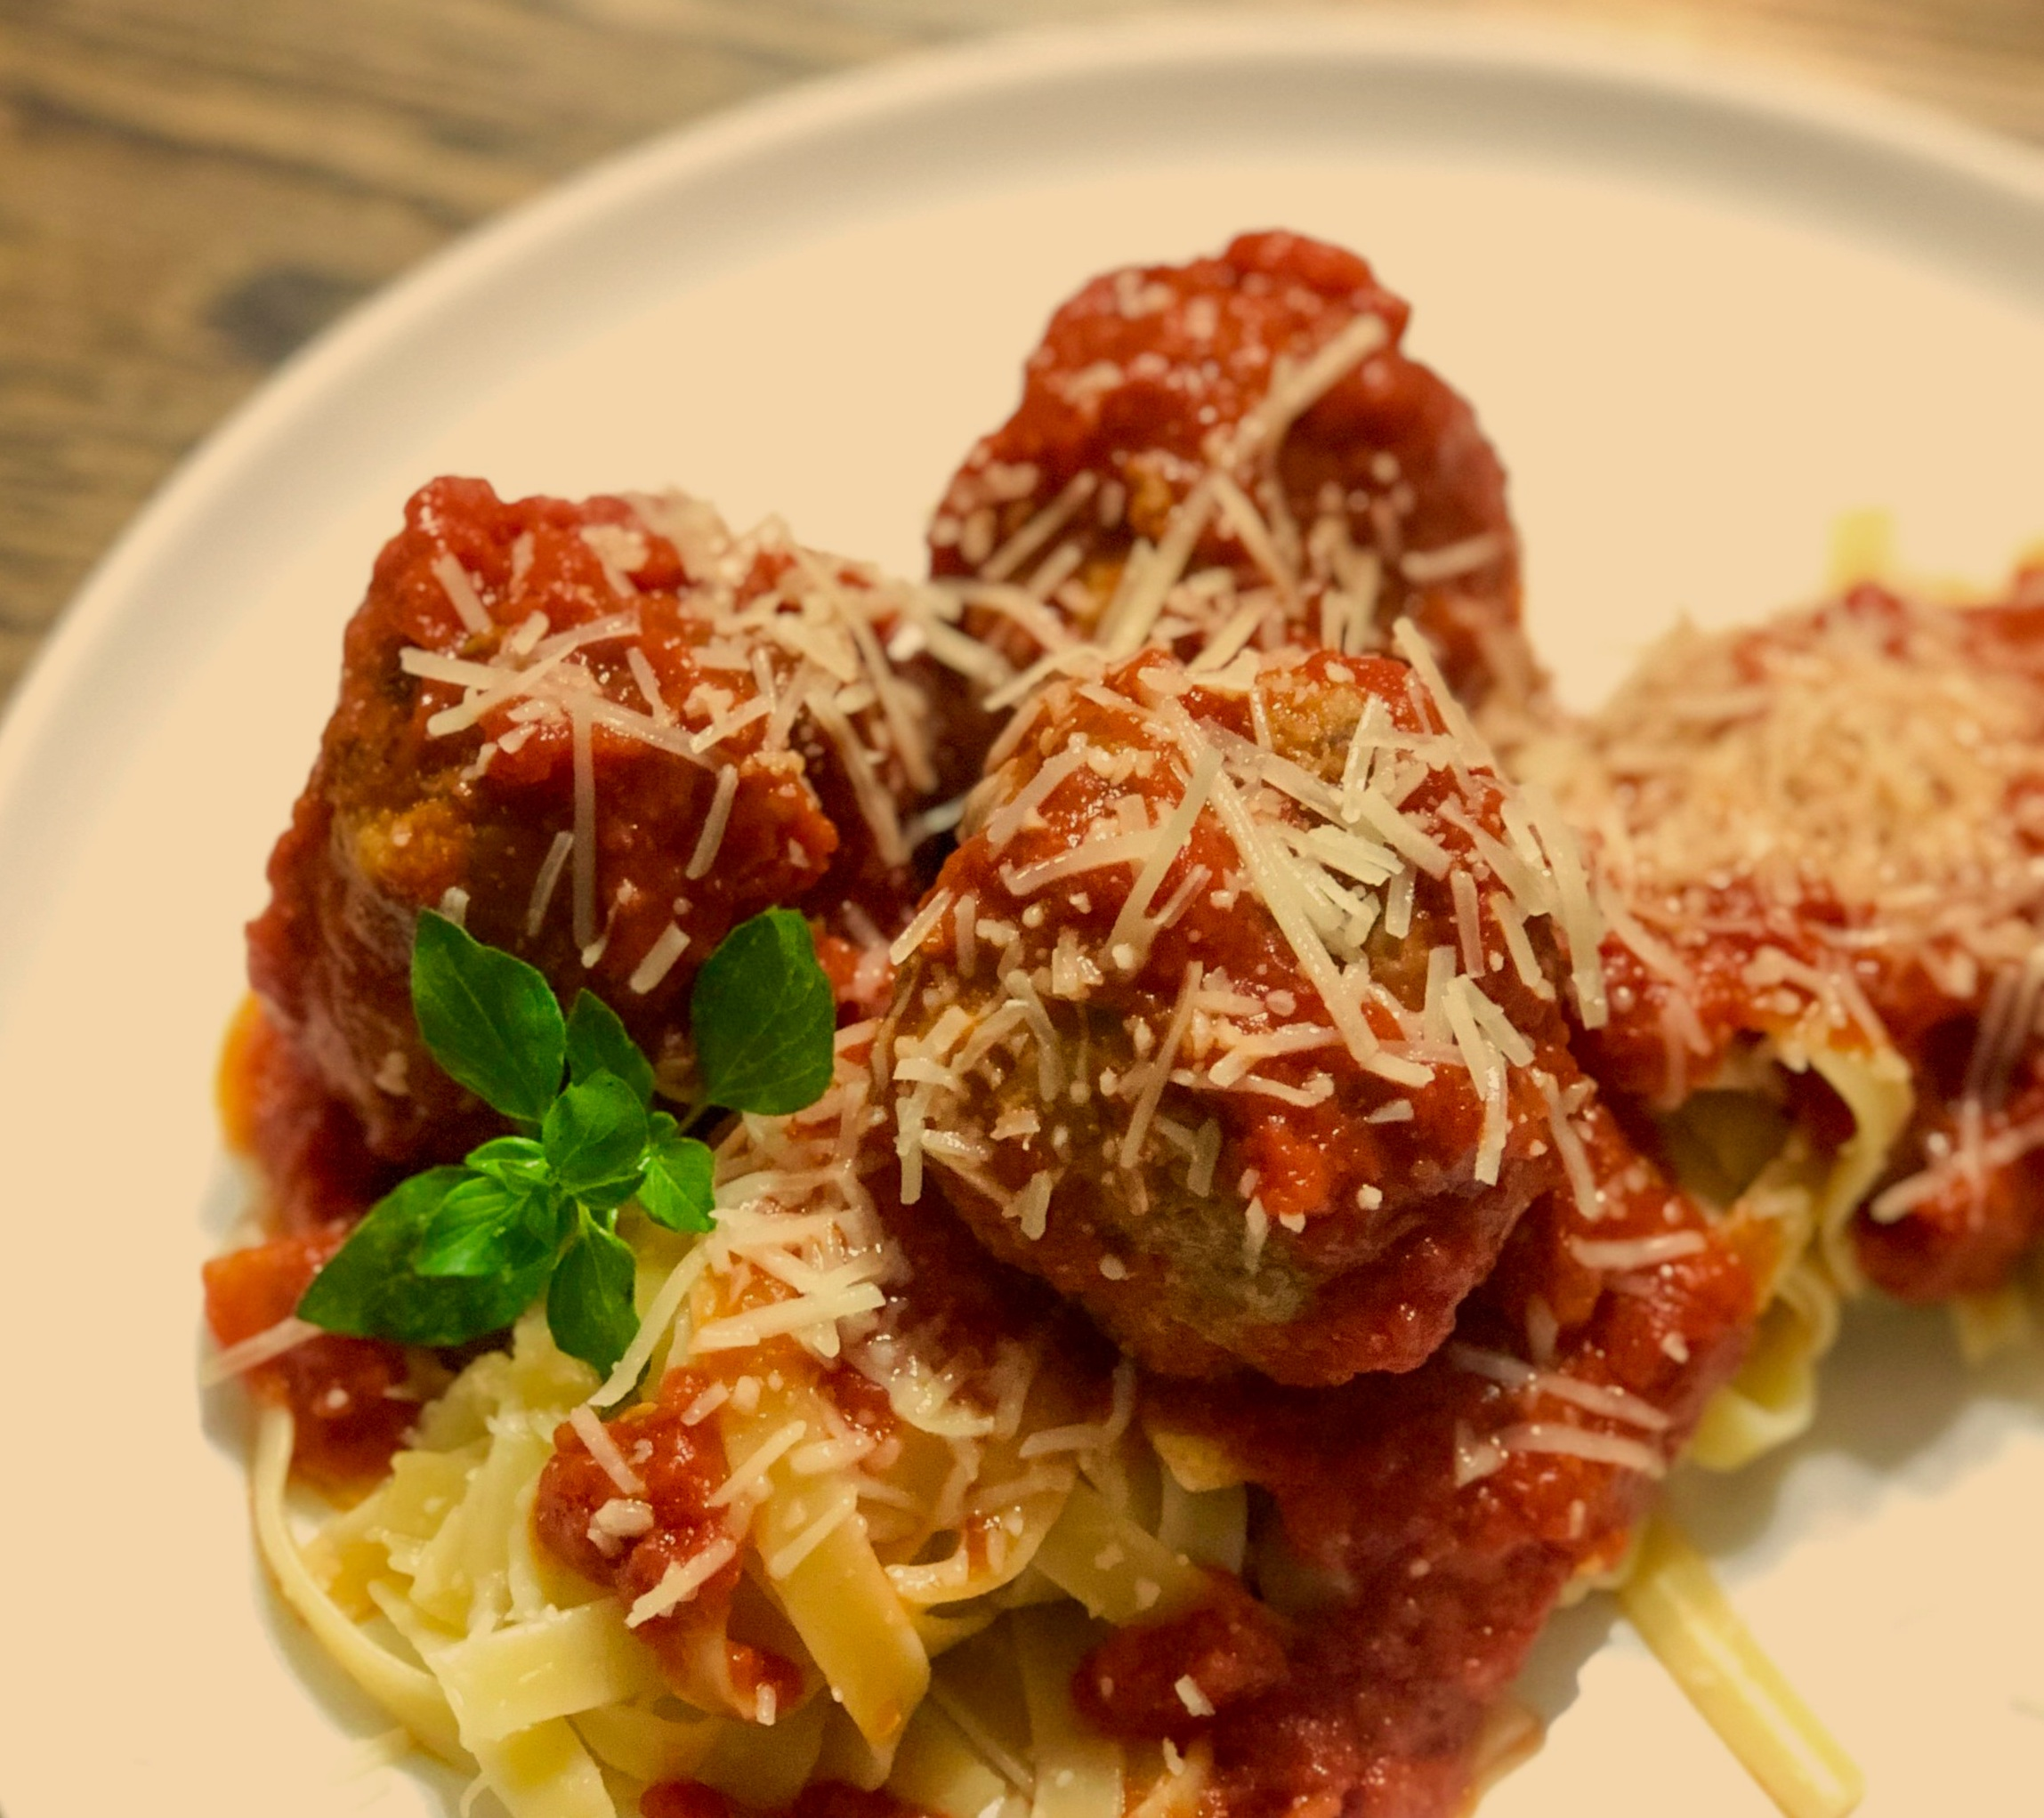 Not your mama's Meatballs -